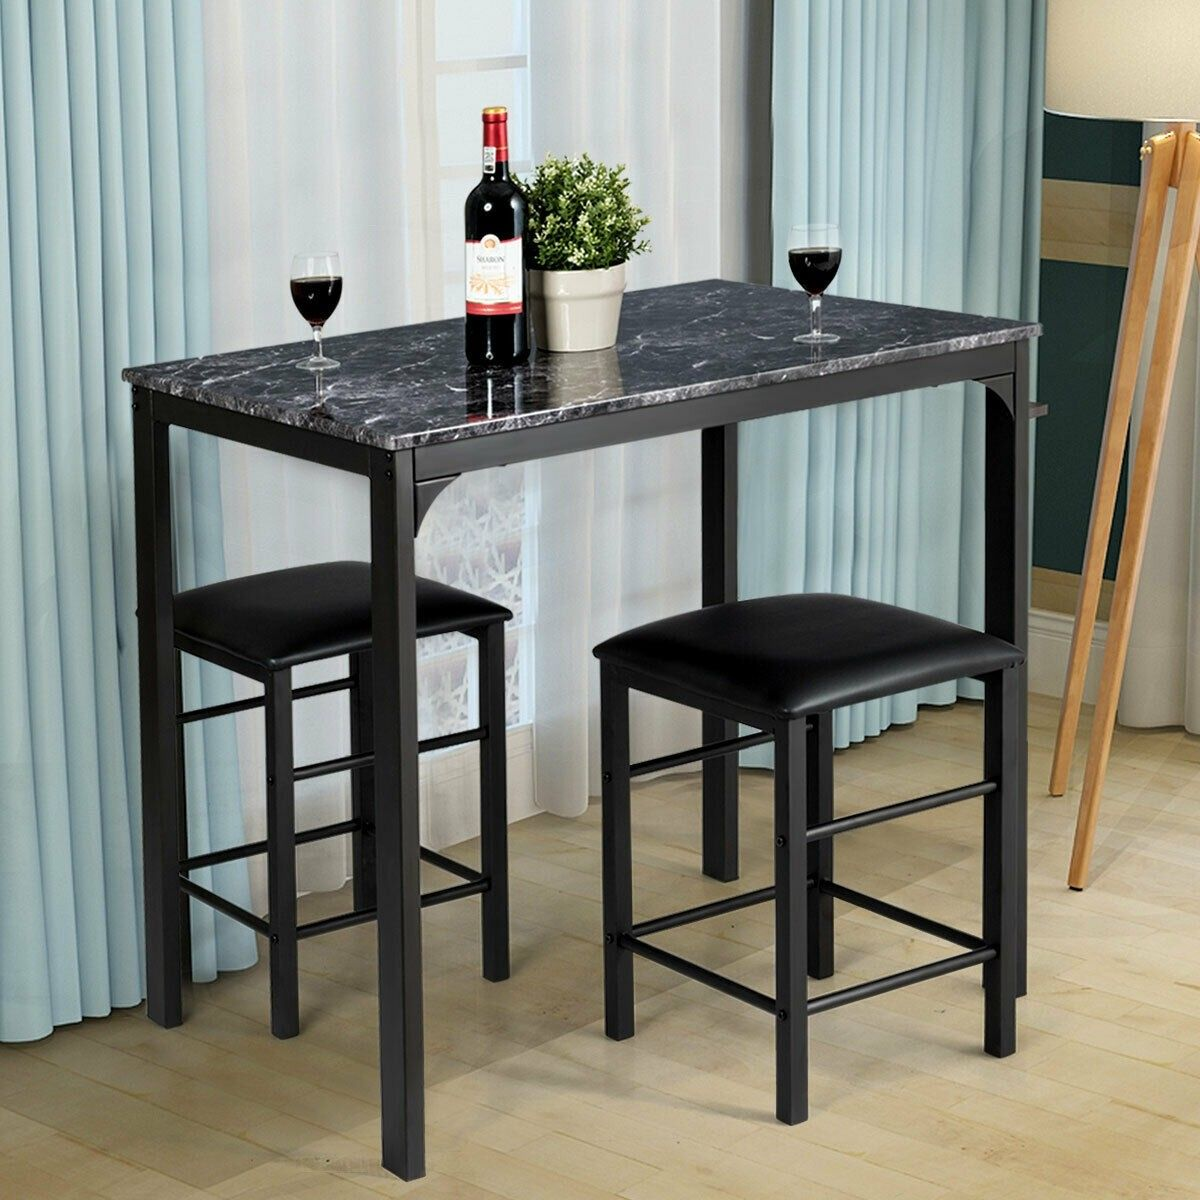 3 Pcs Counter Height Dining Set Faux Marble Table Dining Table